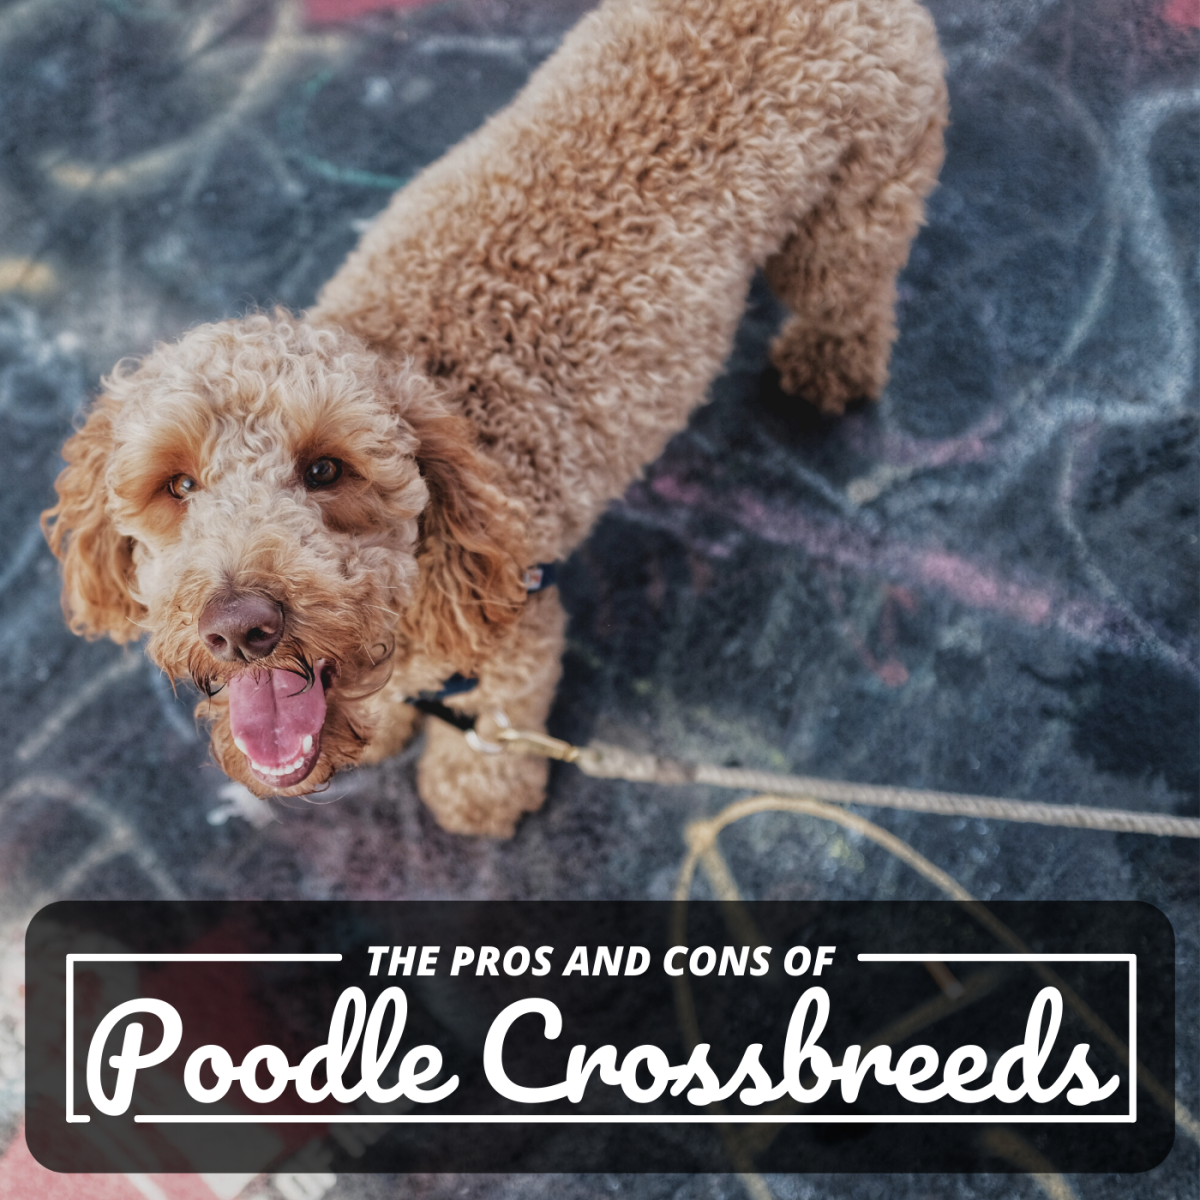 Many people rush into getting a poodle mix because they want a dog that doesn't shed much, but some of these breeds also have negative characteristics most folks don't know about.